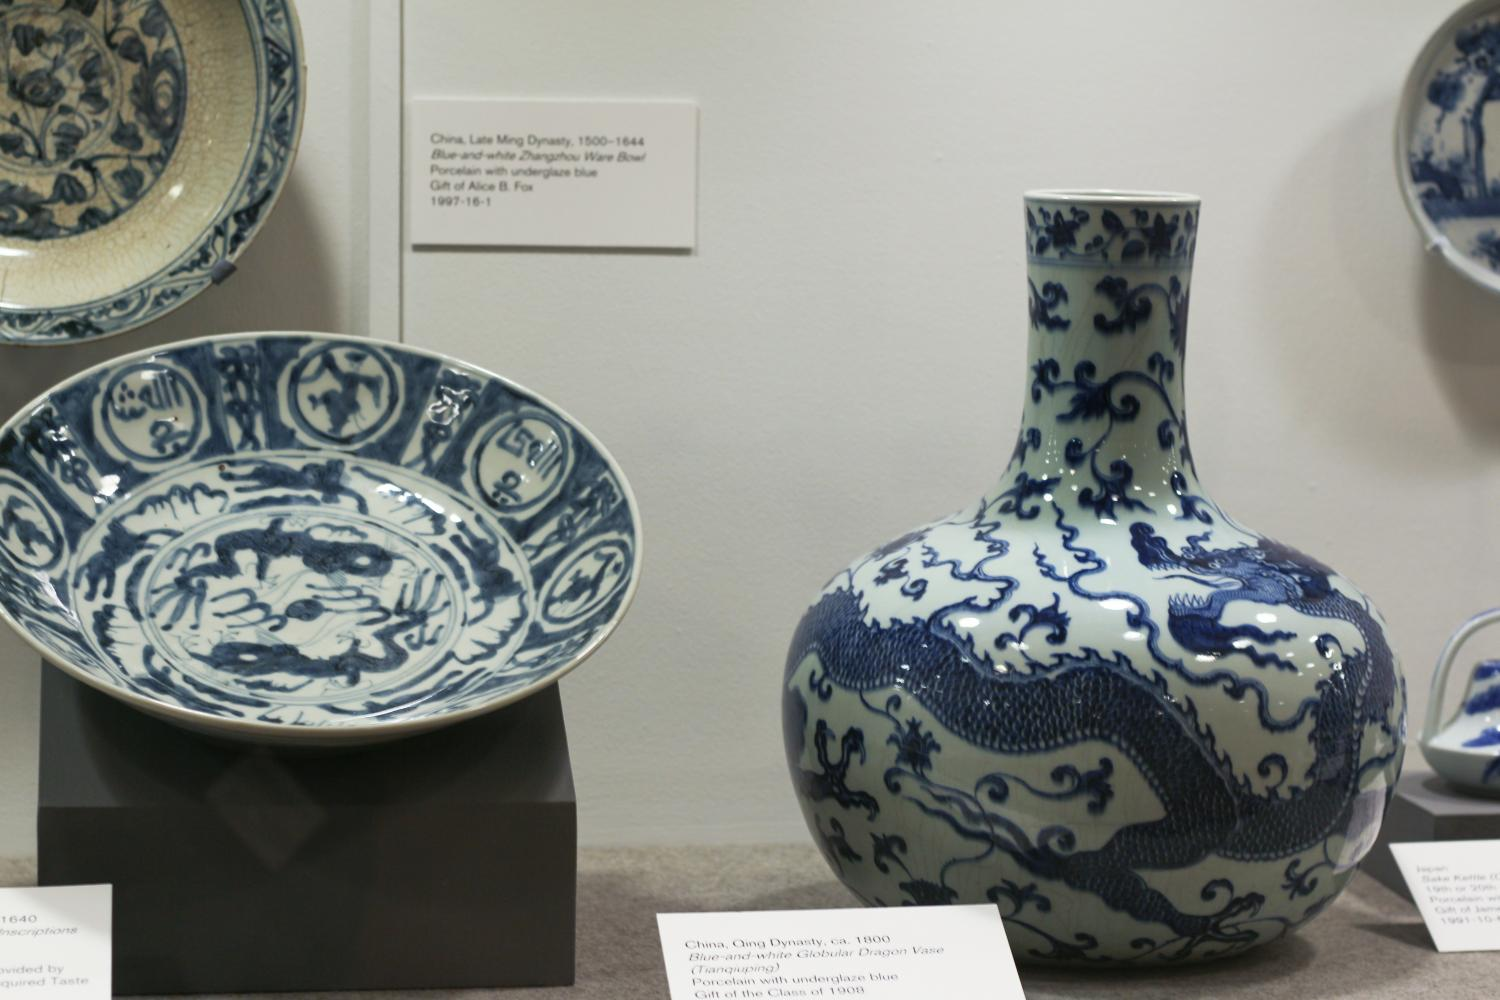 Case of blue and white ceramics, including the museum's large dragon vase. The thickness of the porcelain indicates it was created for export. Thicker porcelain was more difficult to crack during overseas trade.